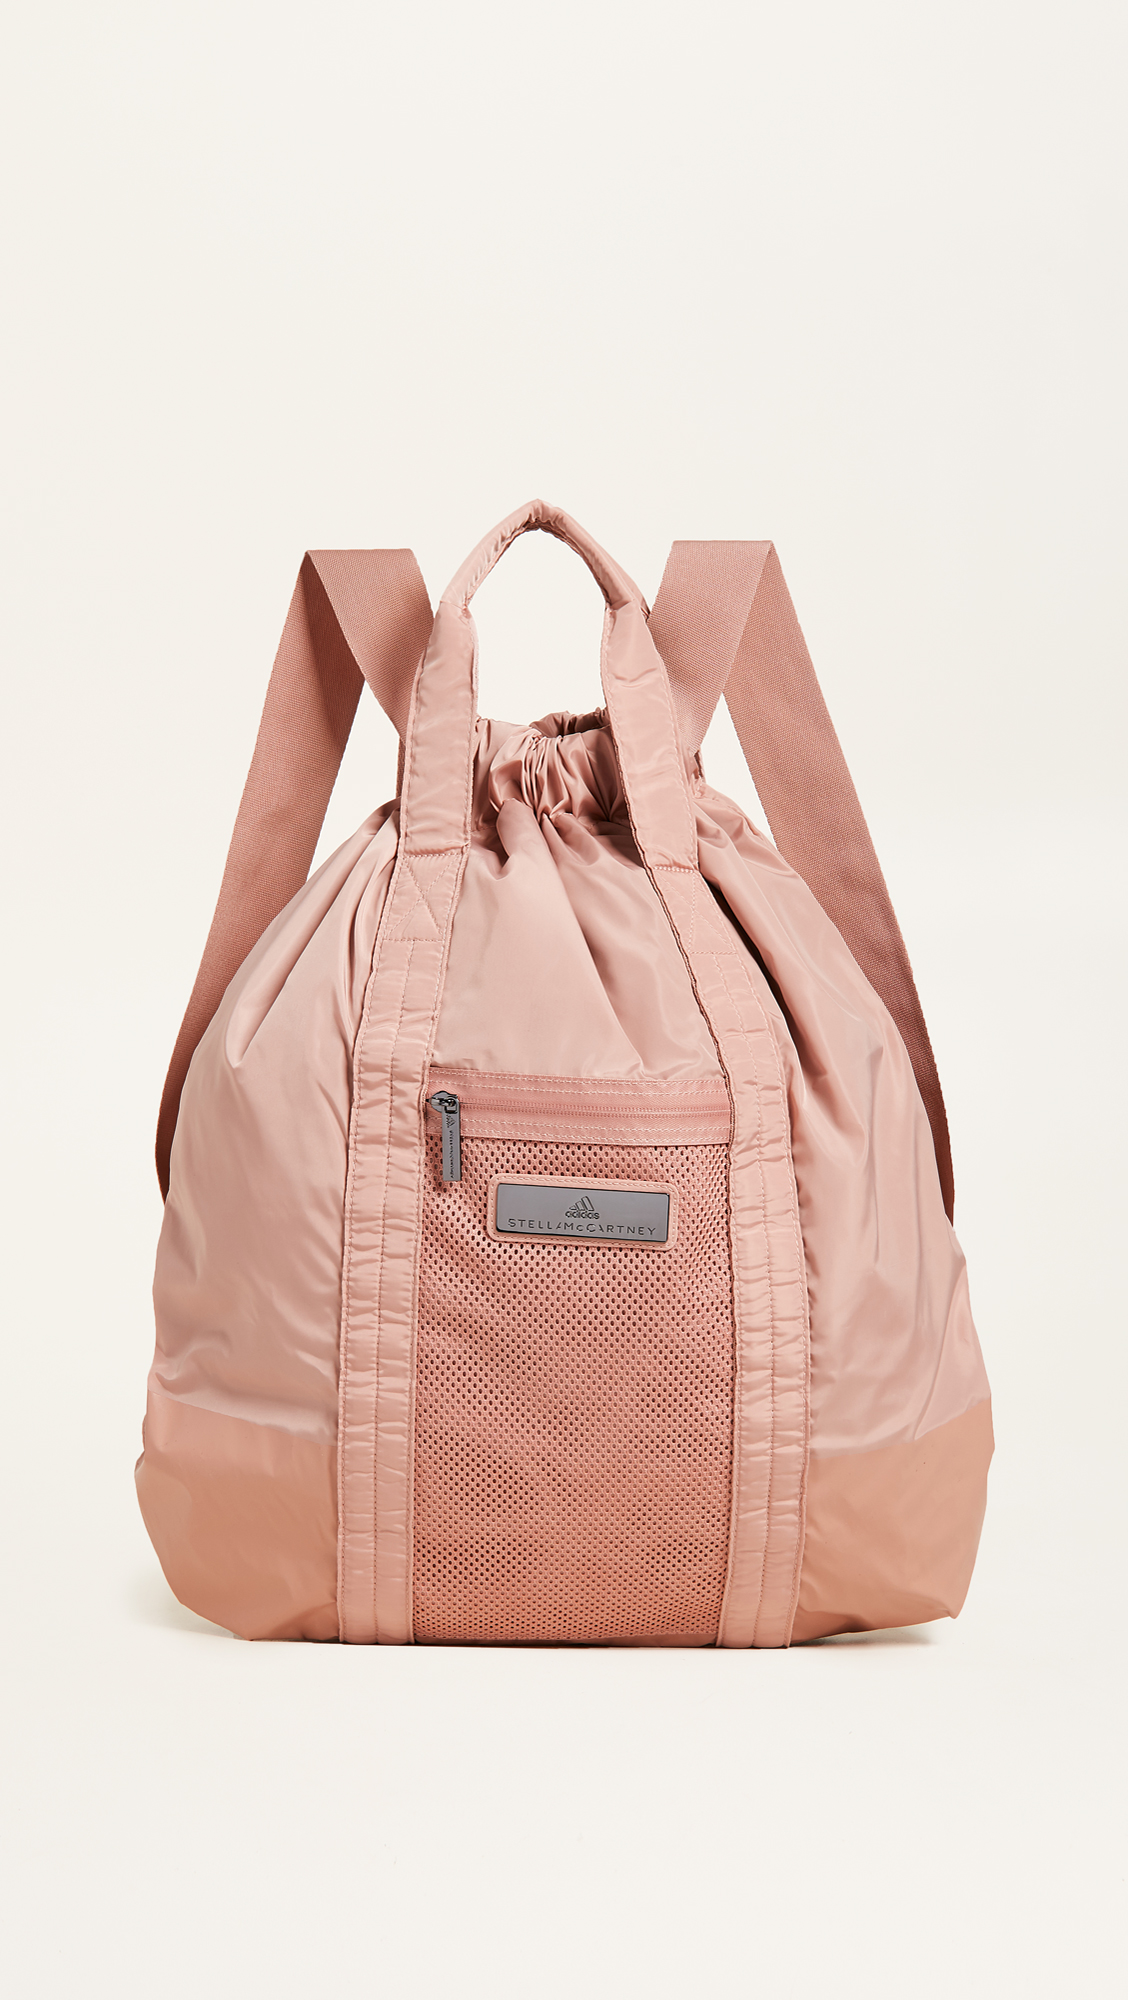 b8a1b652b8bc9 adidas by Stella McCartney Gym Sack Backpack